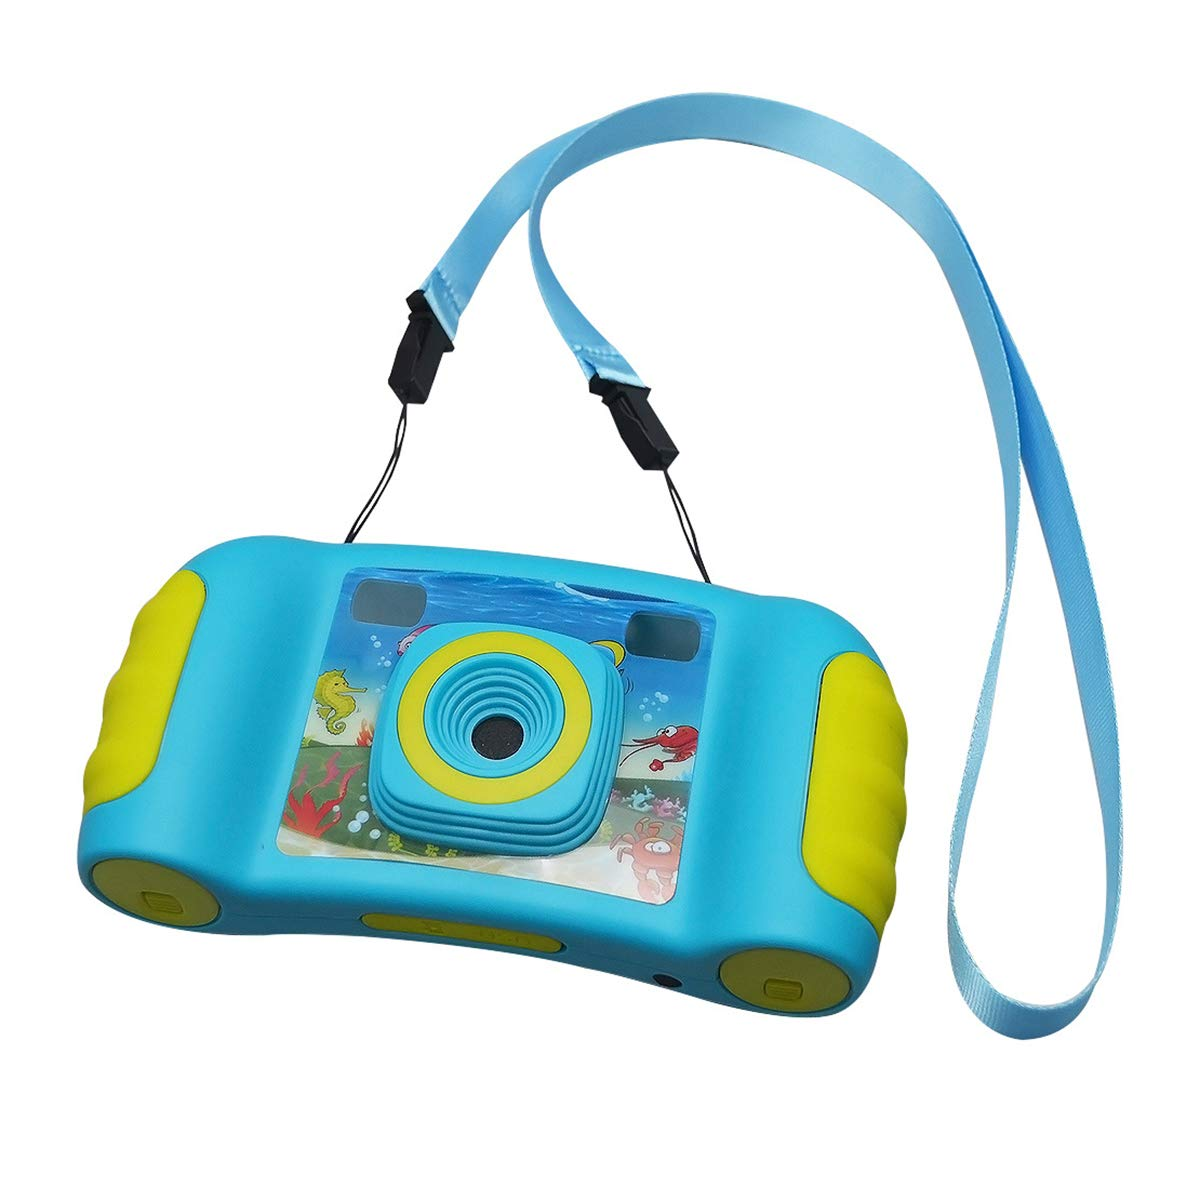 bouti1583 Digital Photo Video Cameras with Games 1.77'' LED Screen for Kids Toy by bouti1583 (Image #7)